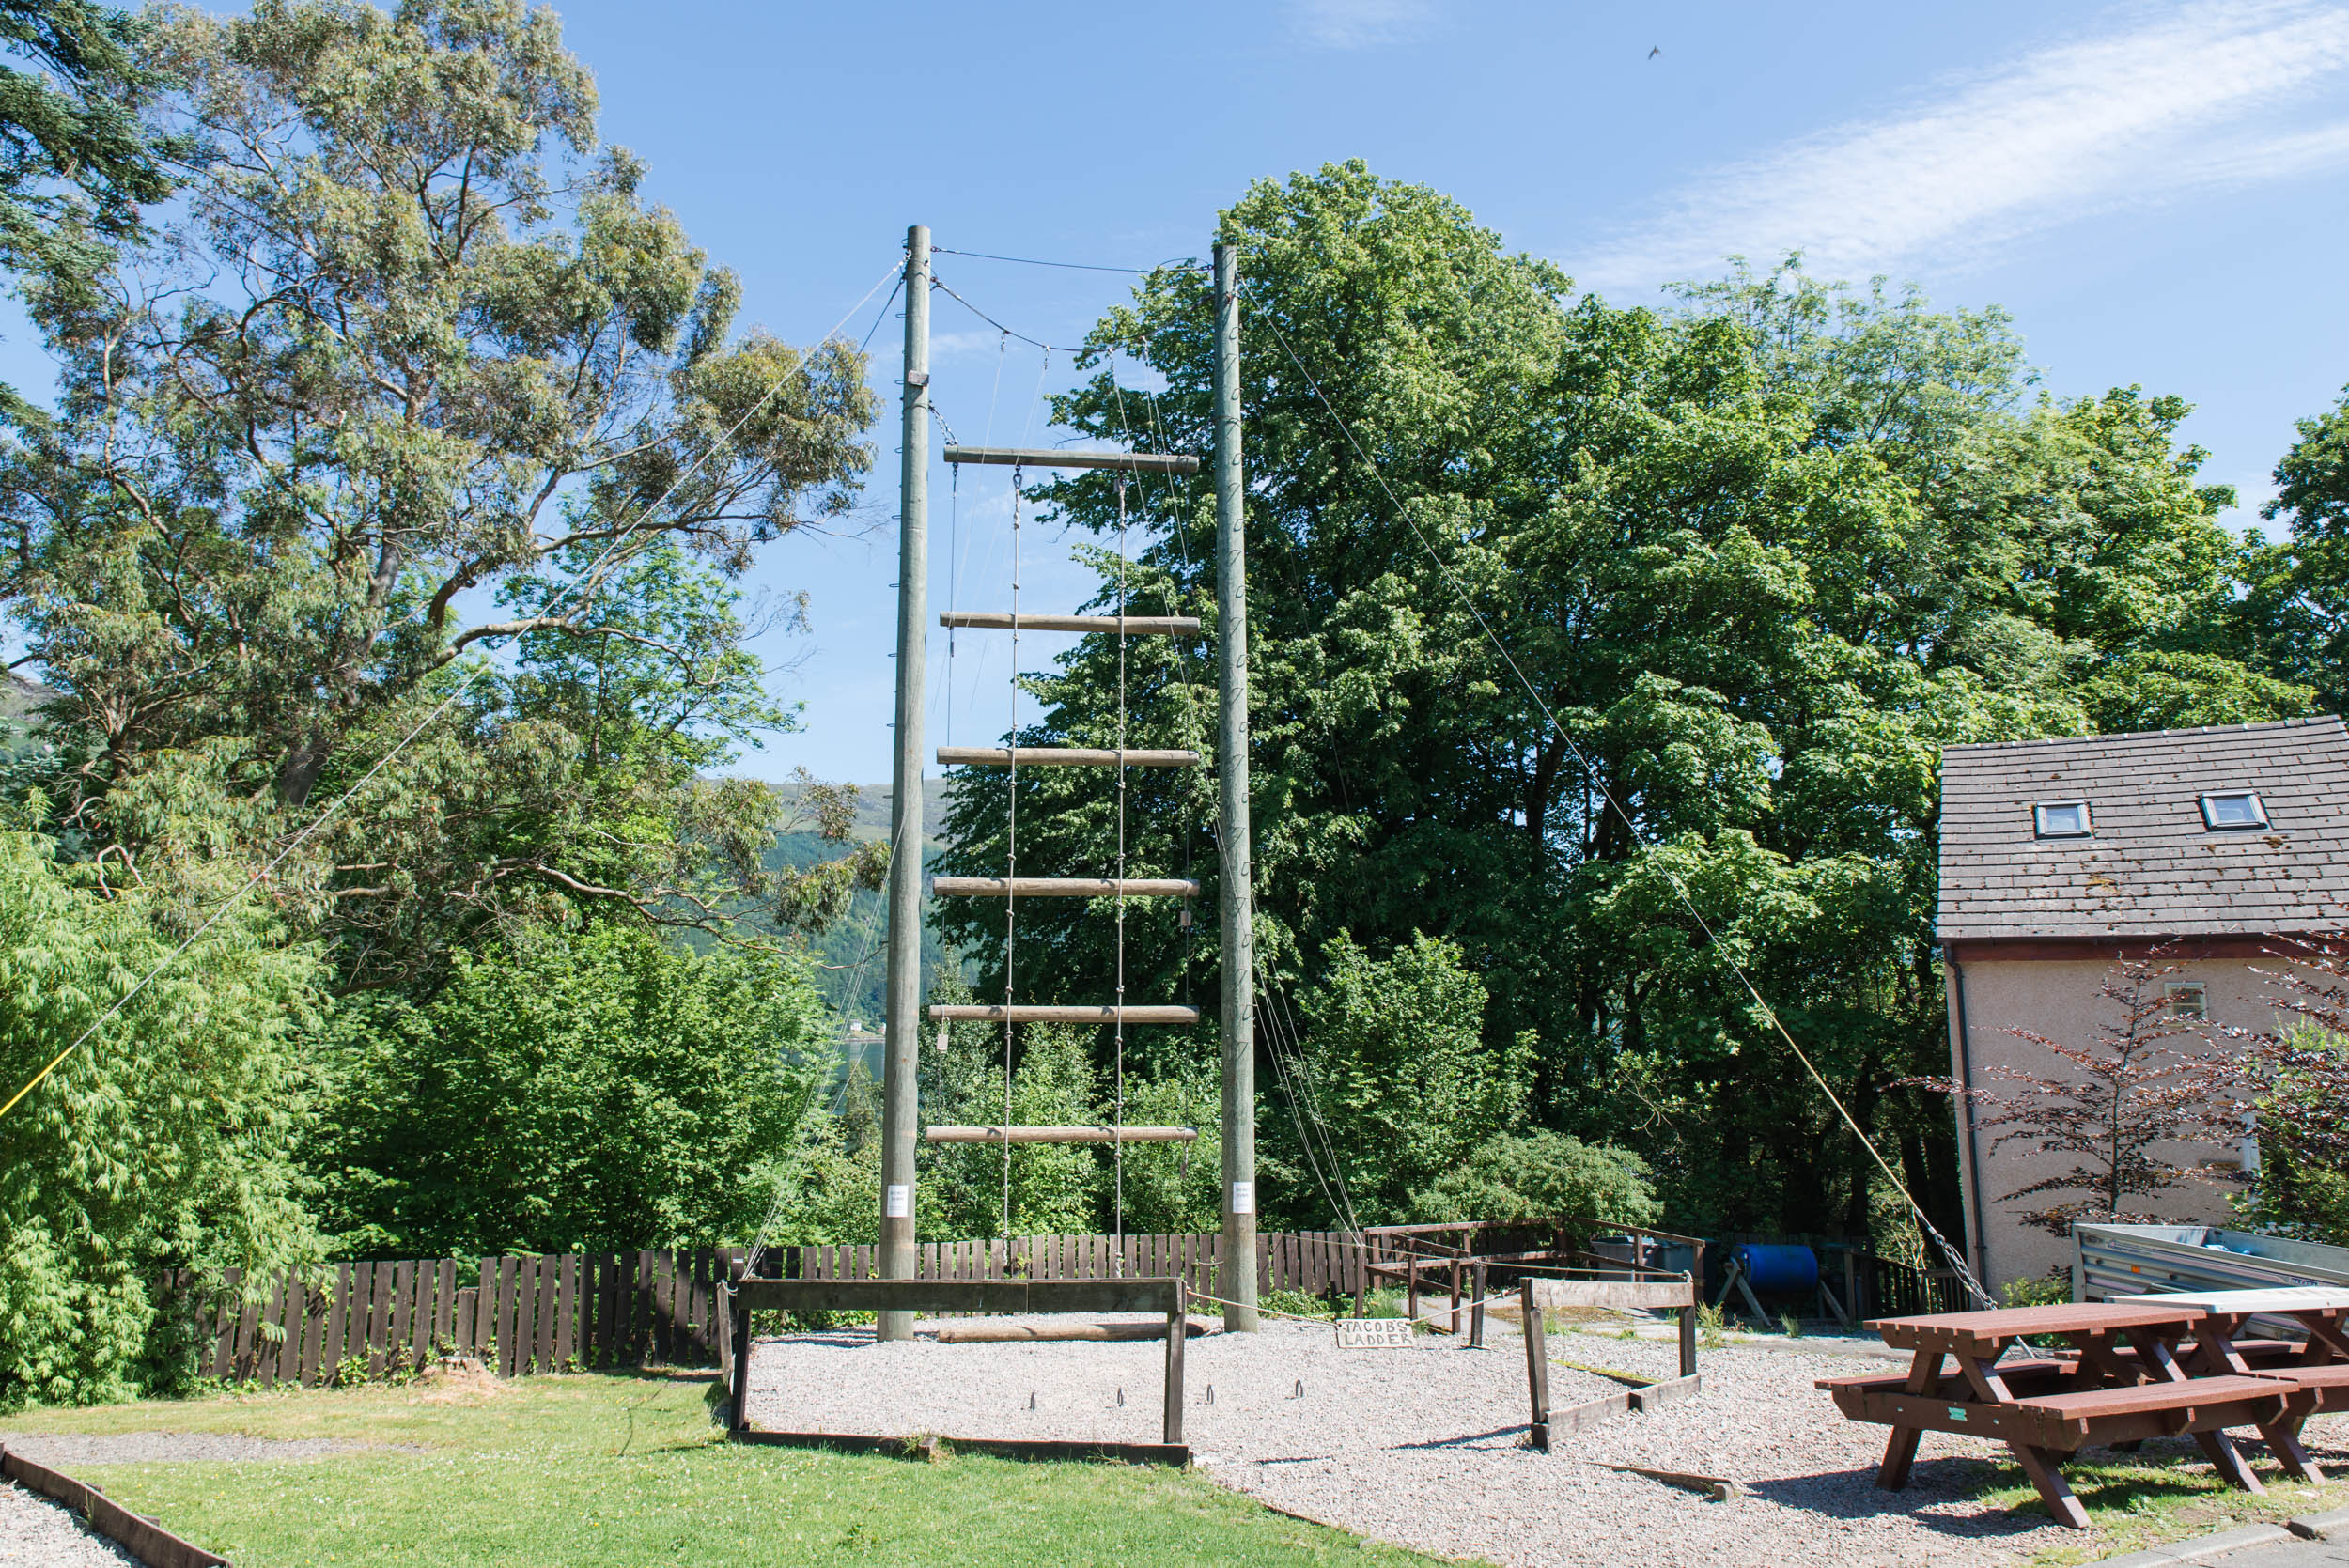 Jacob's Ladder, Ardroy Outdoor Centre